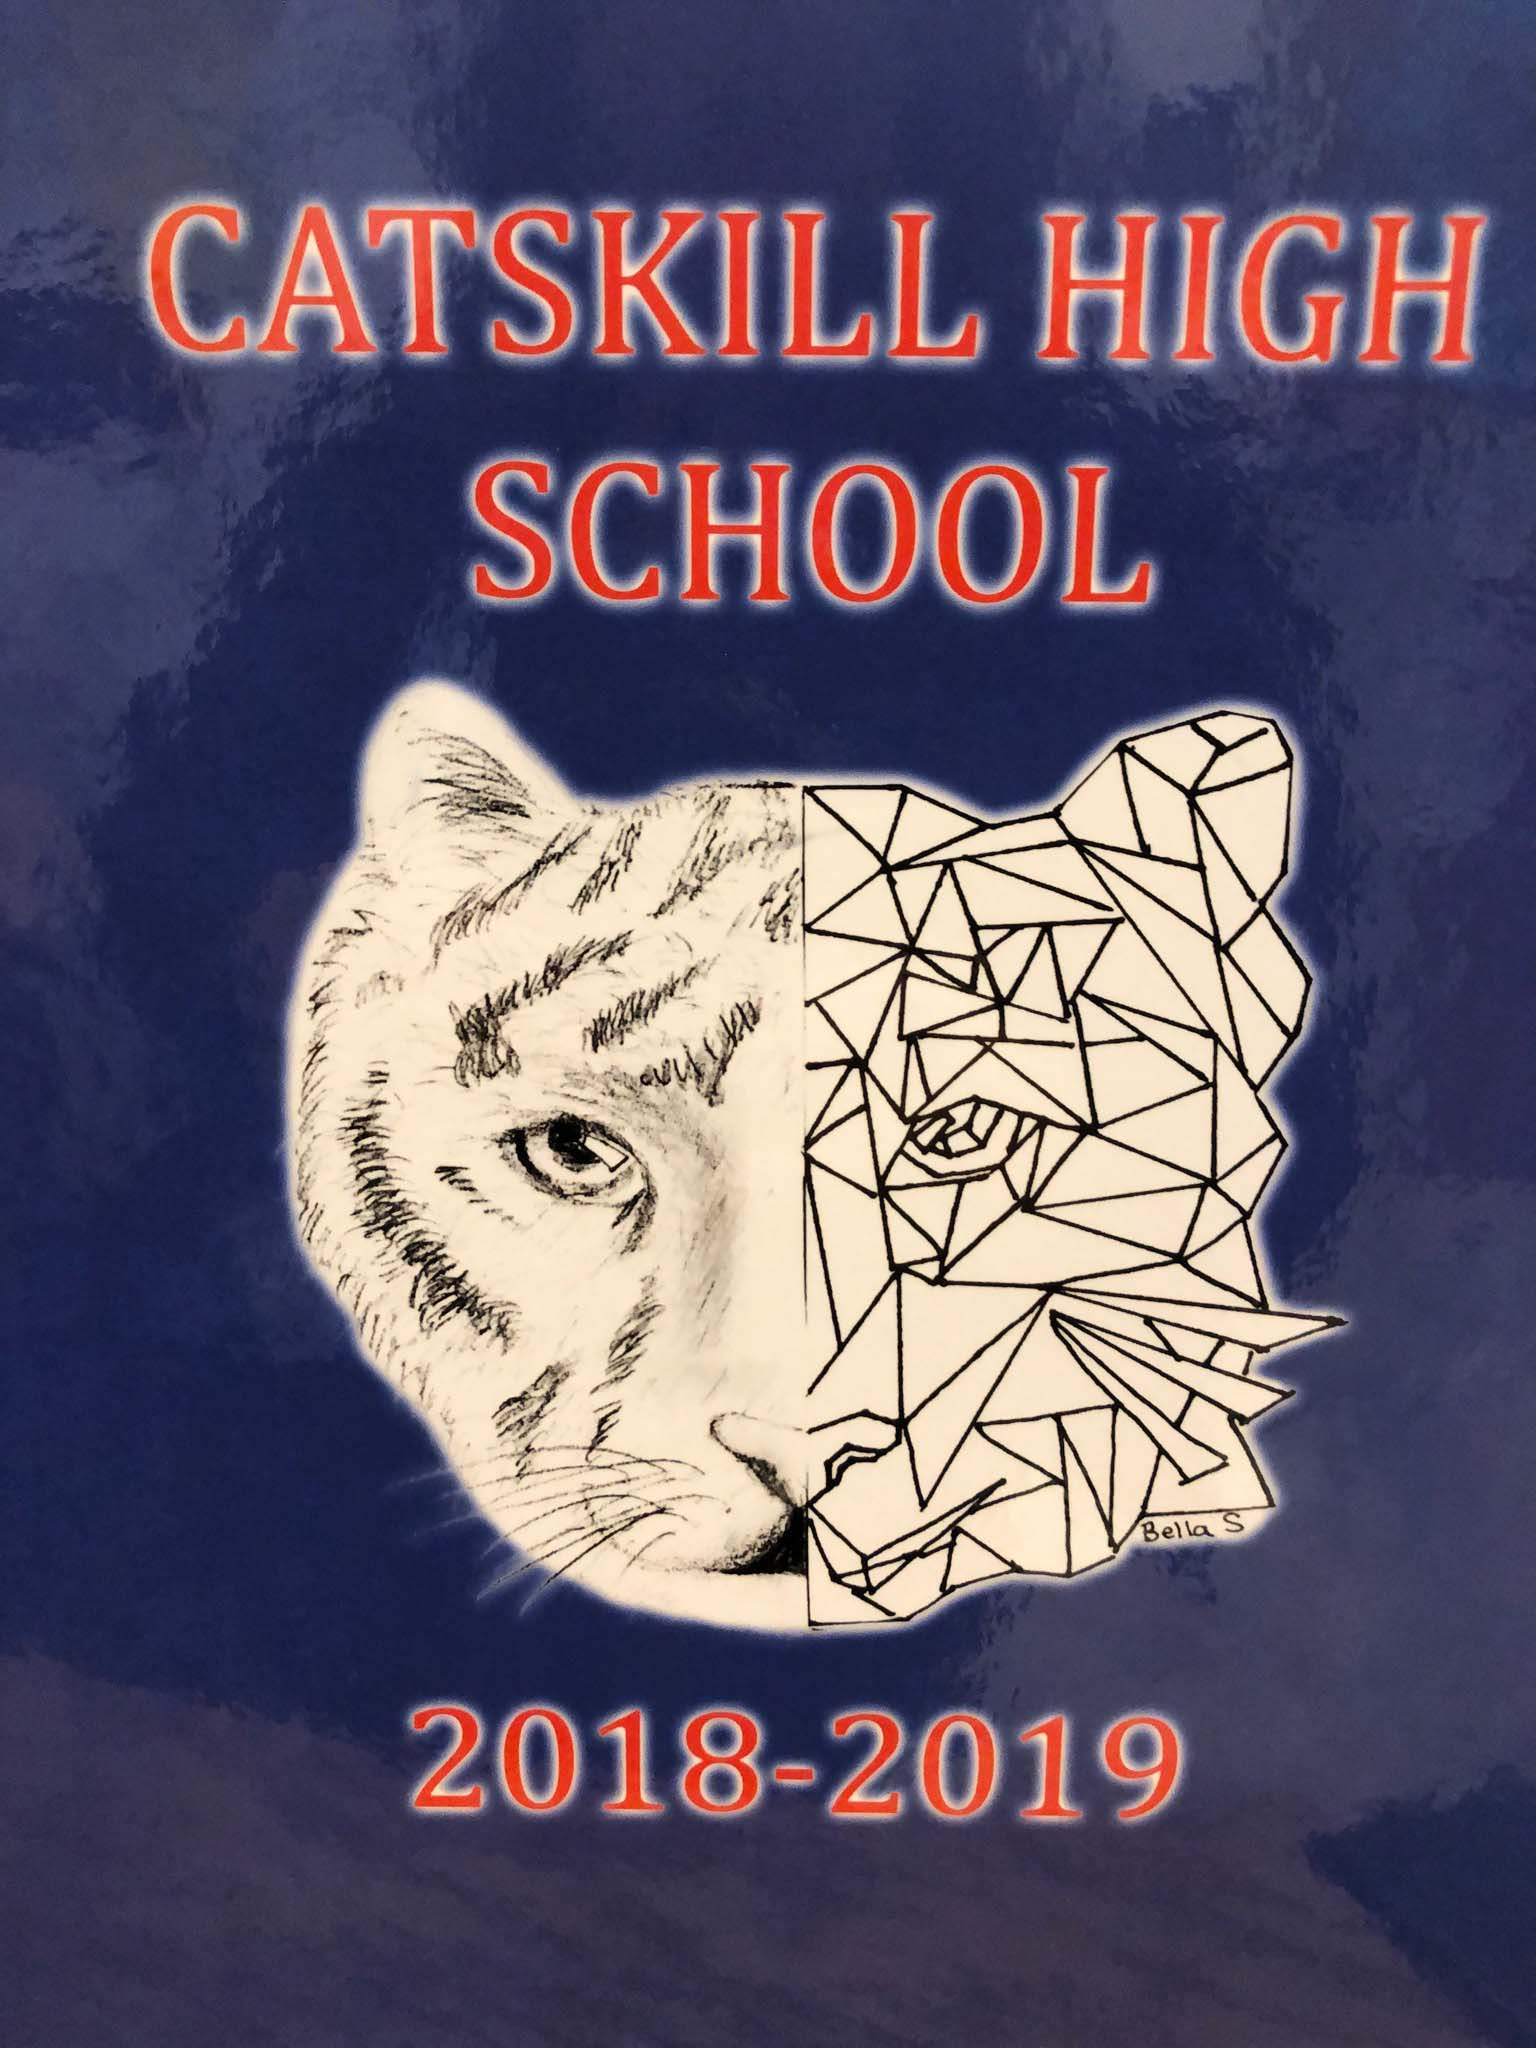 Catskill High School 2018-19 Yearbook cover with drawing of cat on it